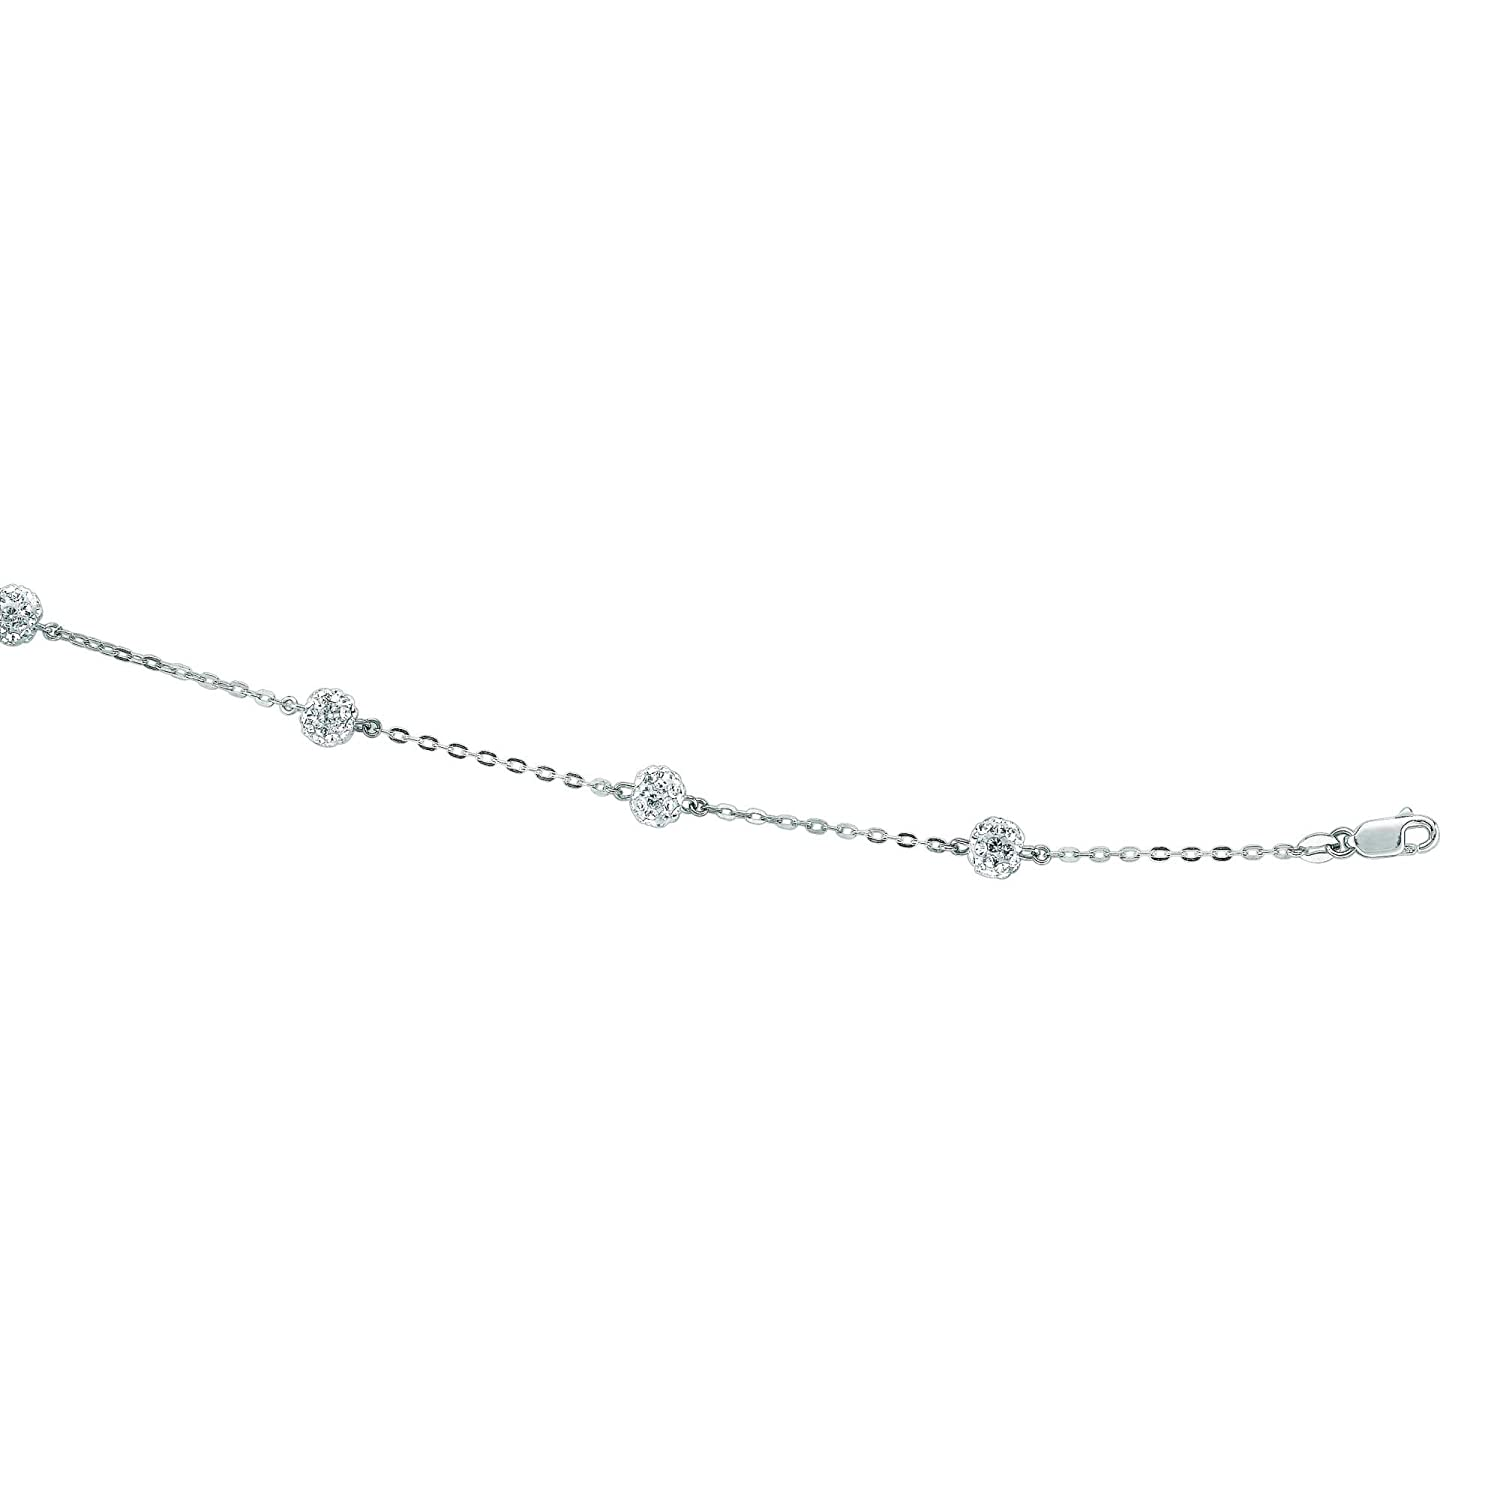 14K White Gold Shiny Cable Chain Link White Crystal Ball Bracelet or Necklace Lobster Clasp by IcedTime